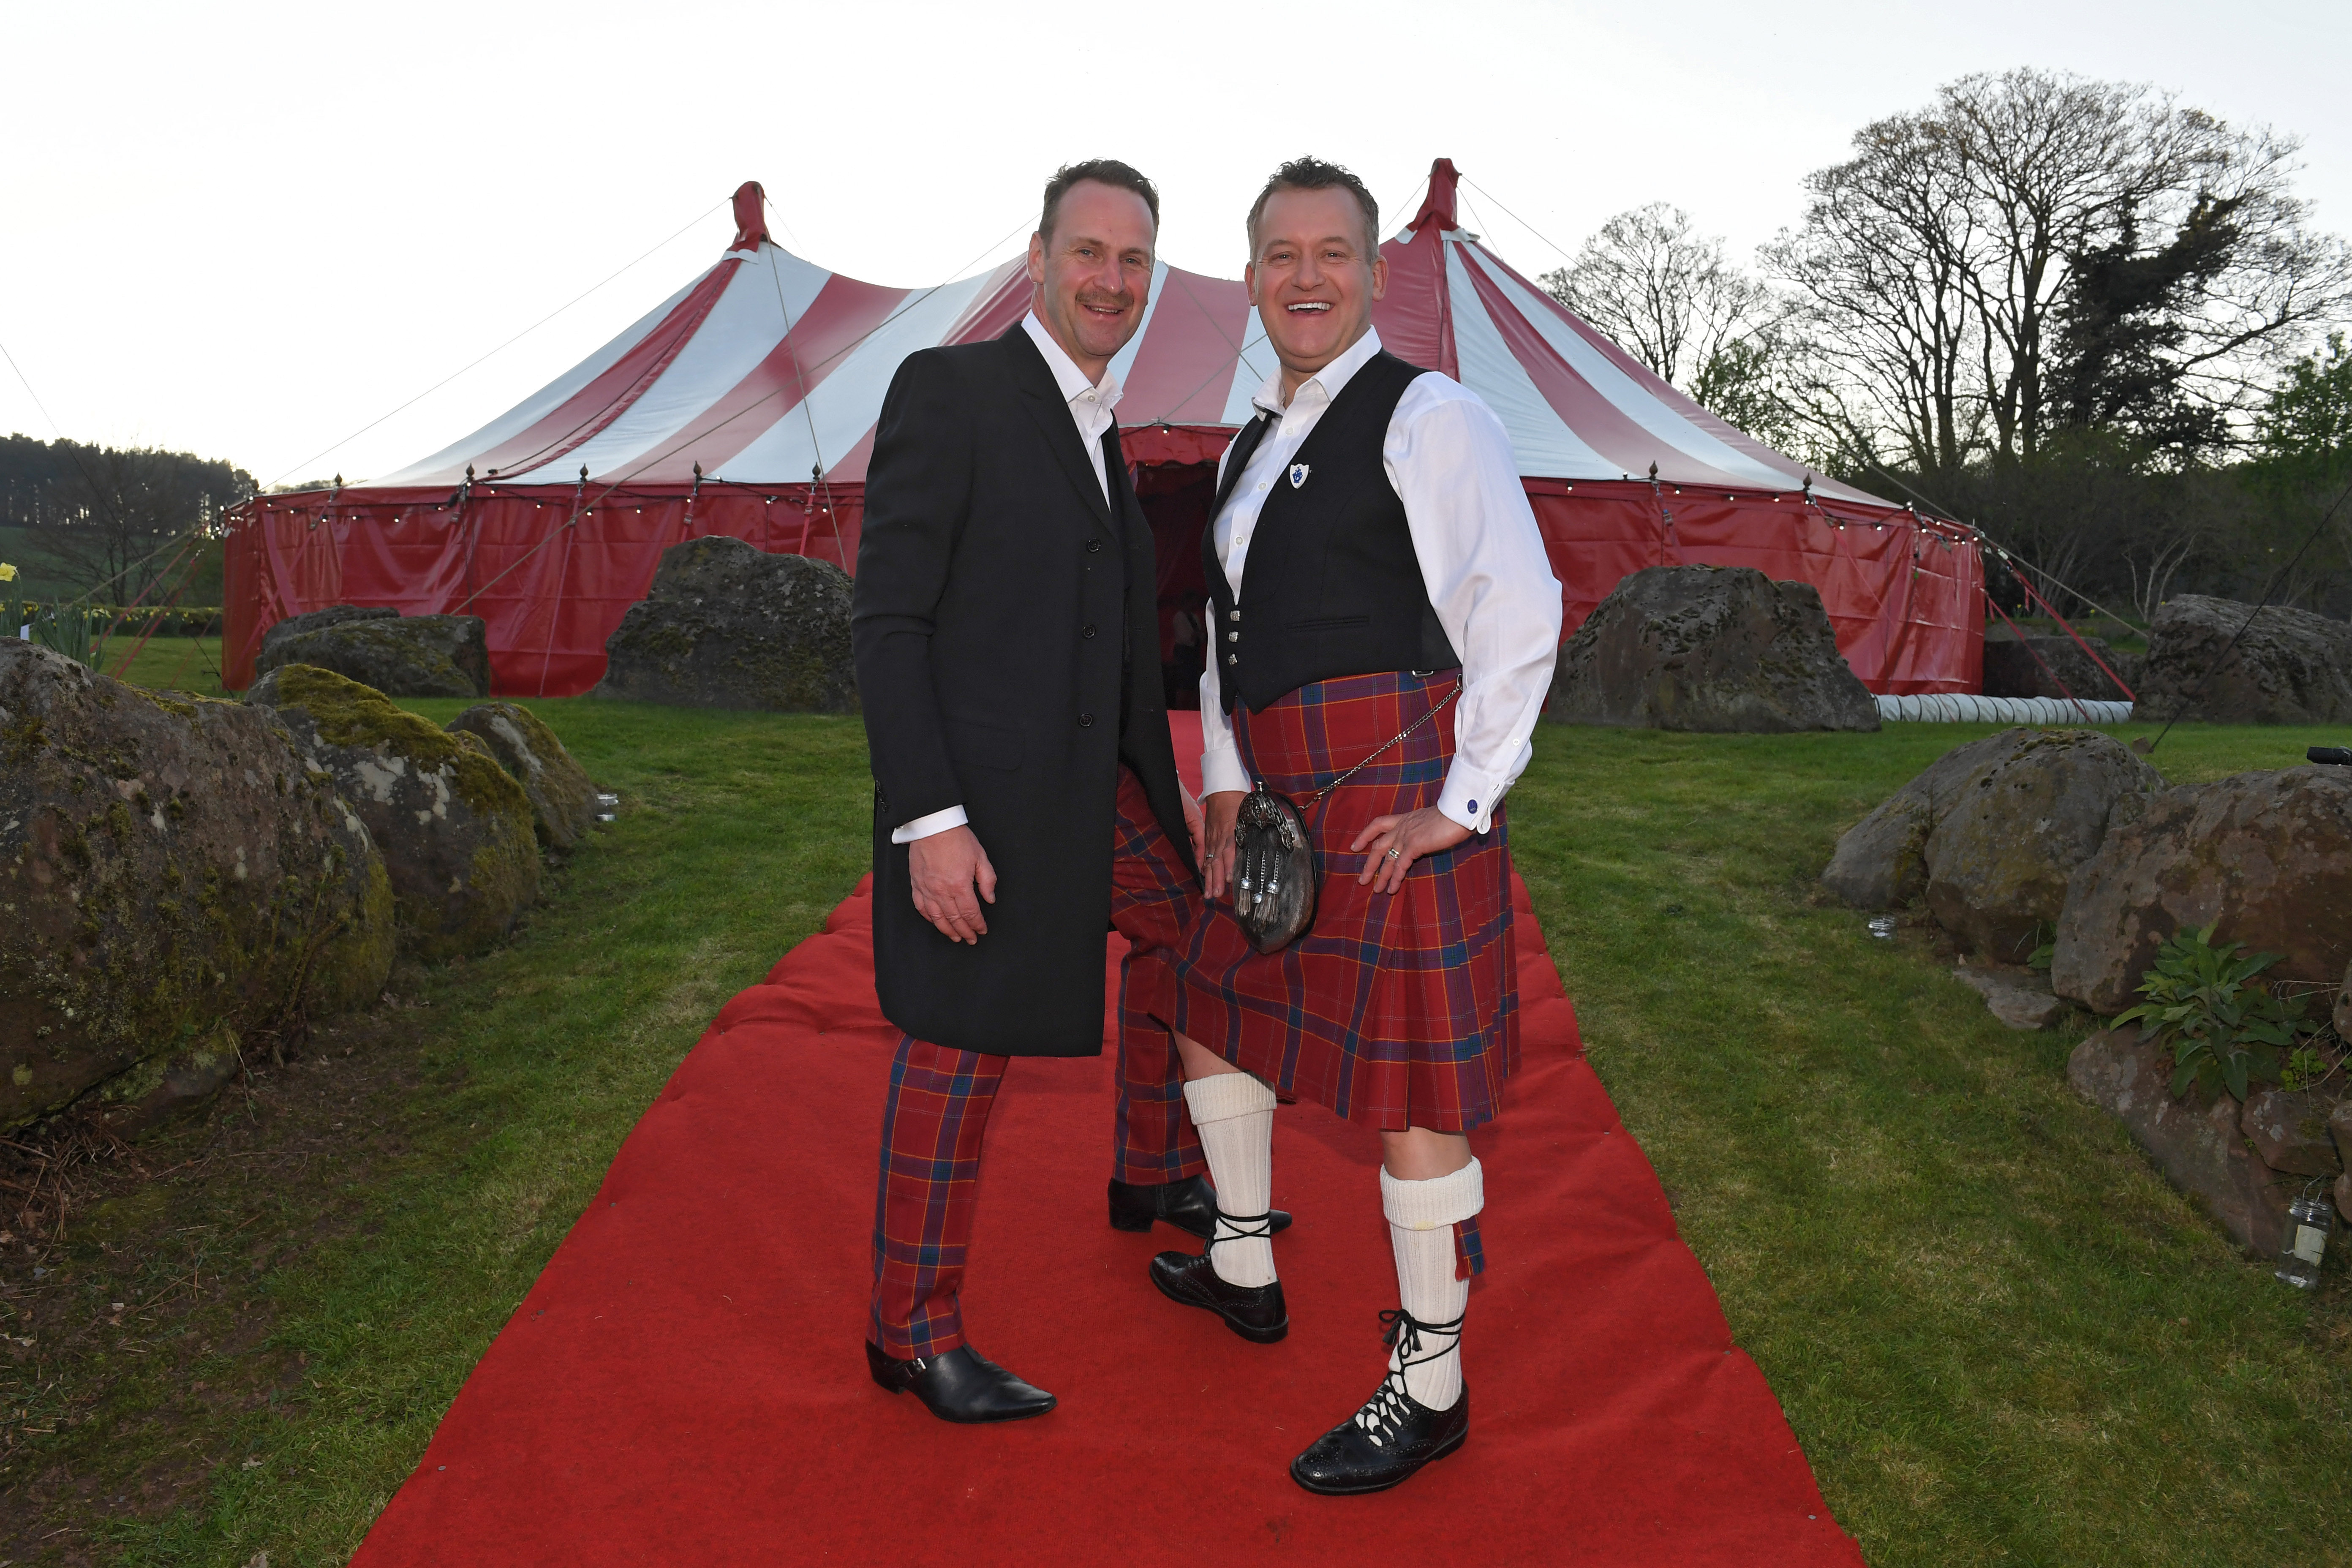 Same sex wedding party tent hire Cheshire